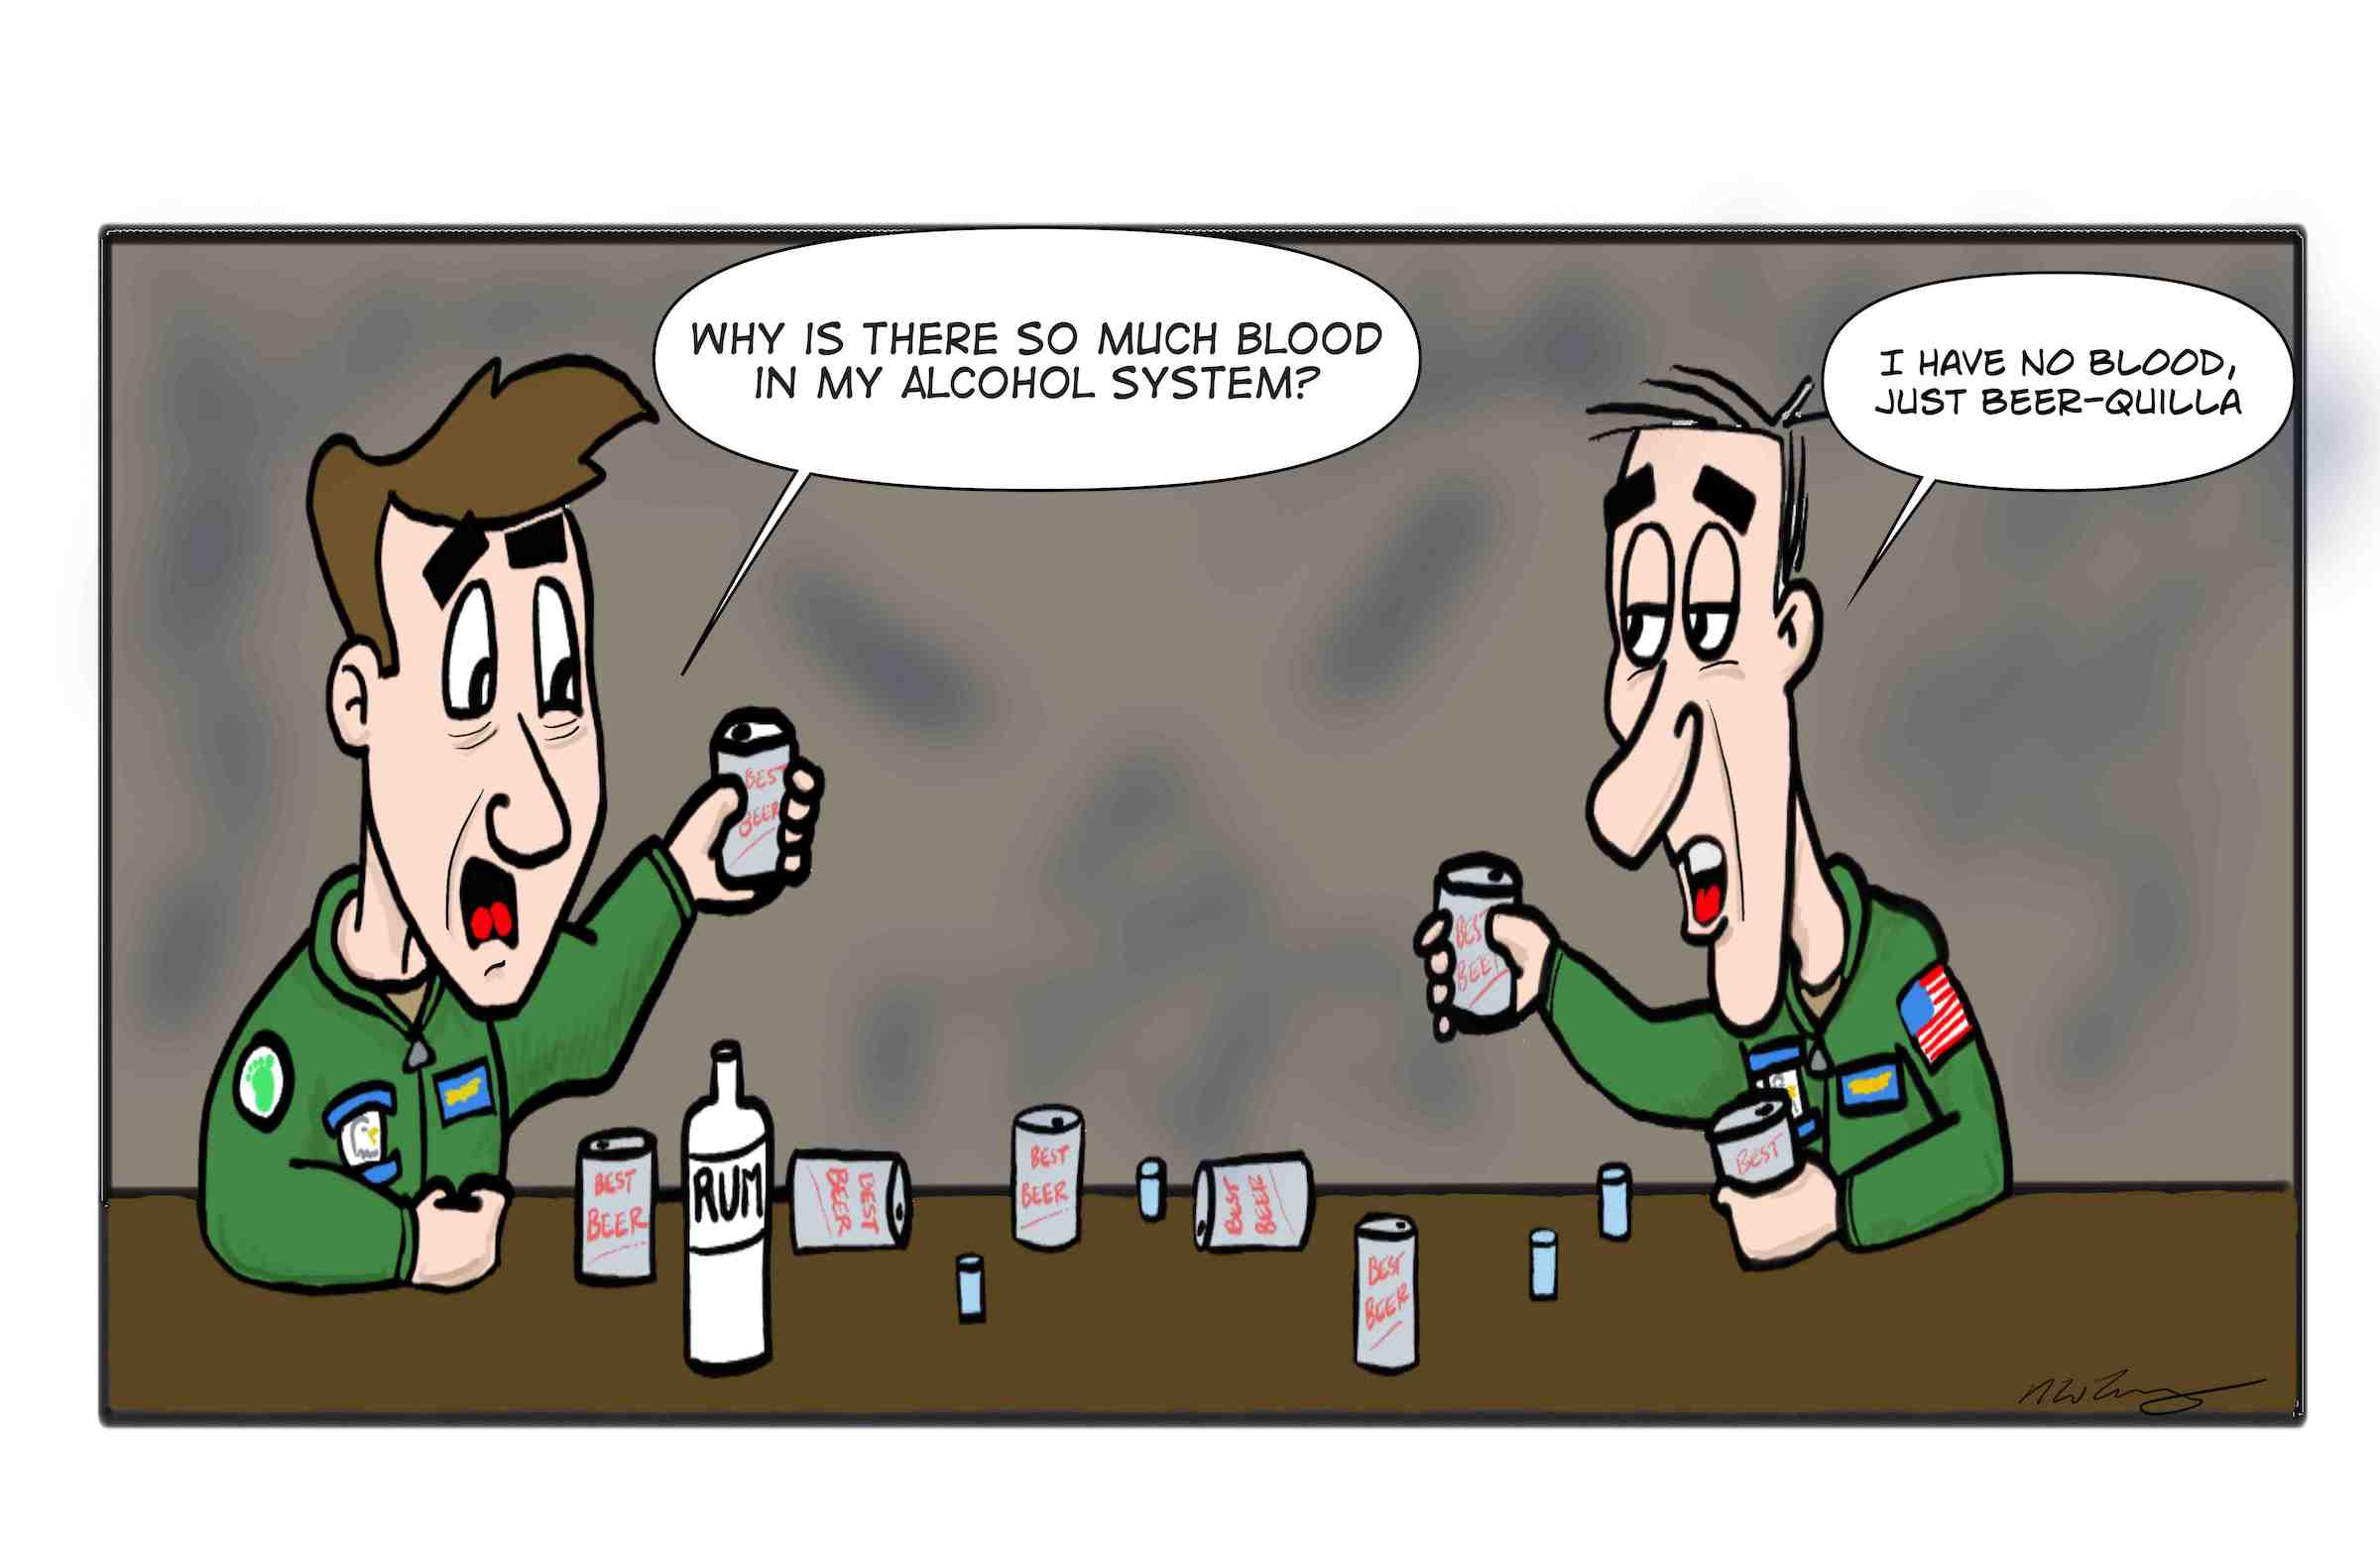 Army aircrew alcohol system is designed to withstand the necessity to drink in every pub discovered worldwide.